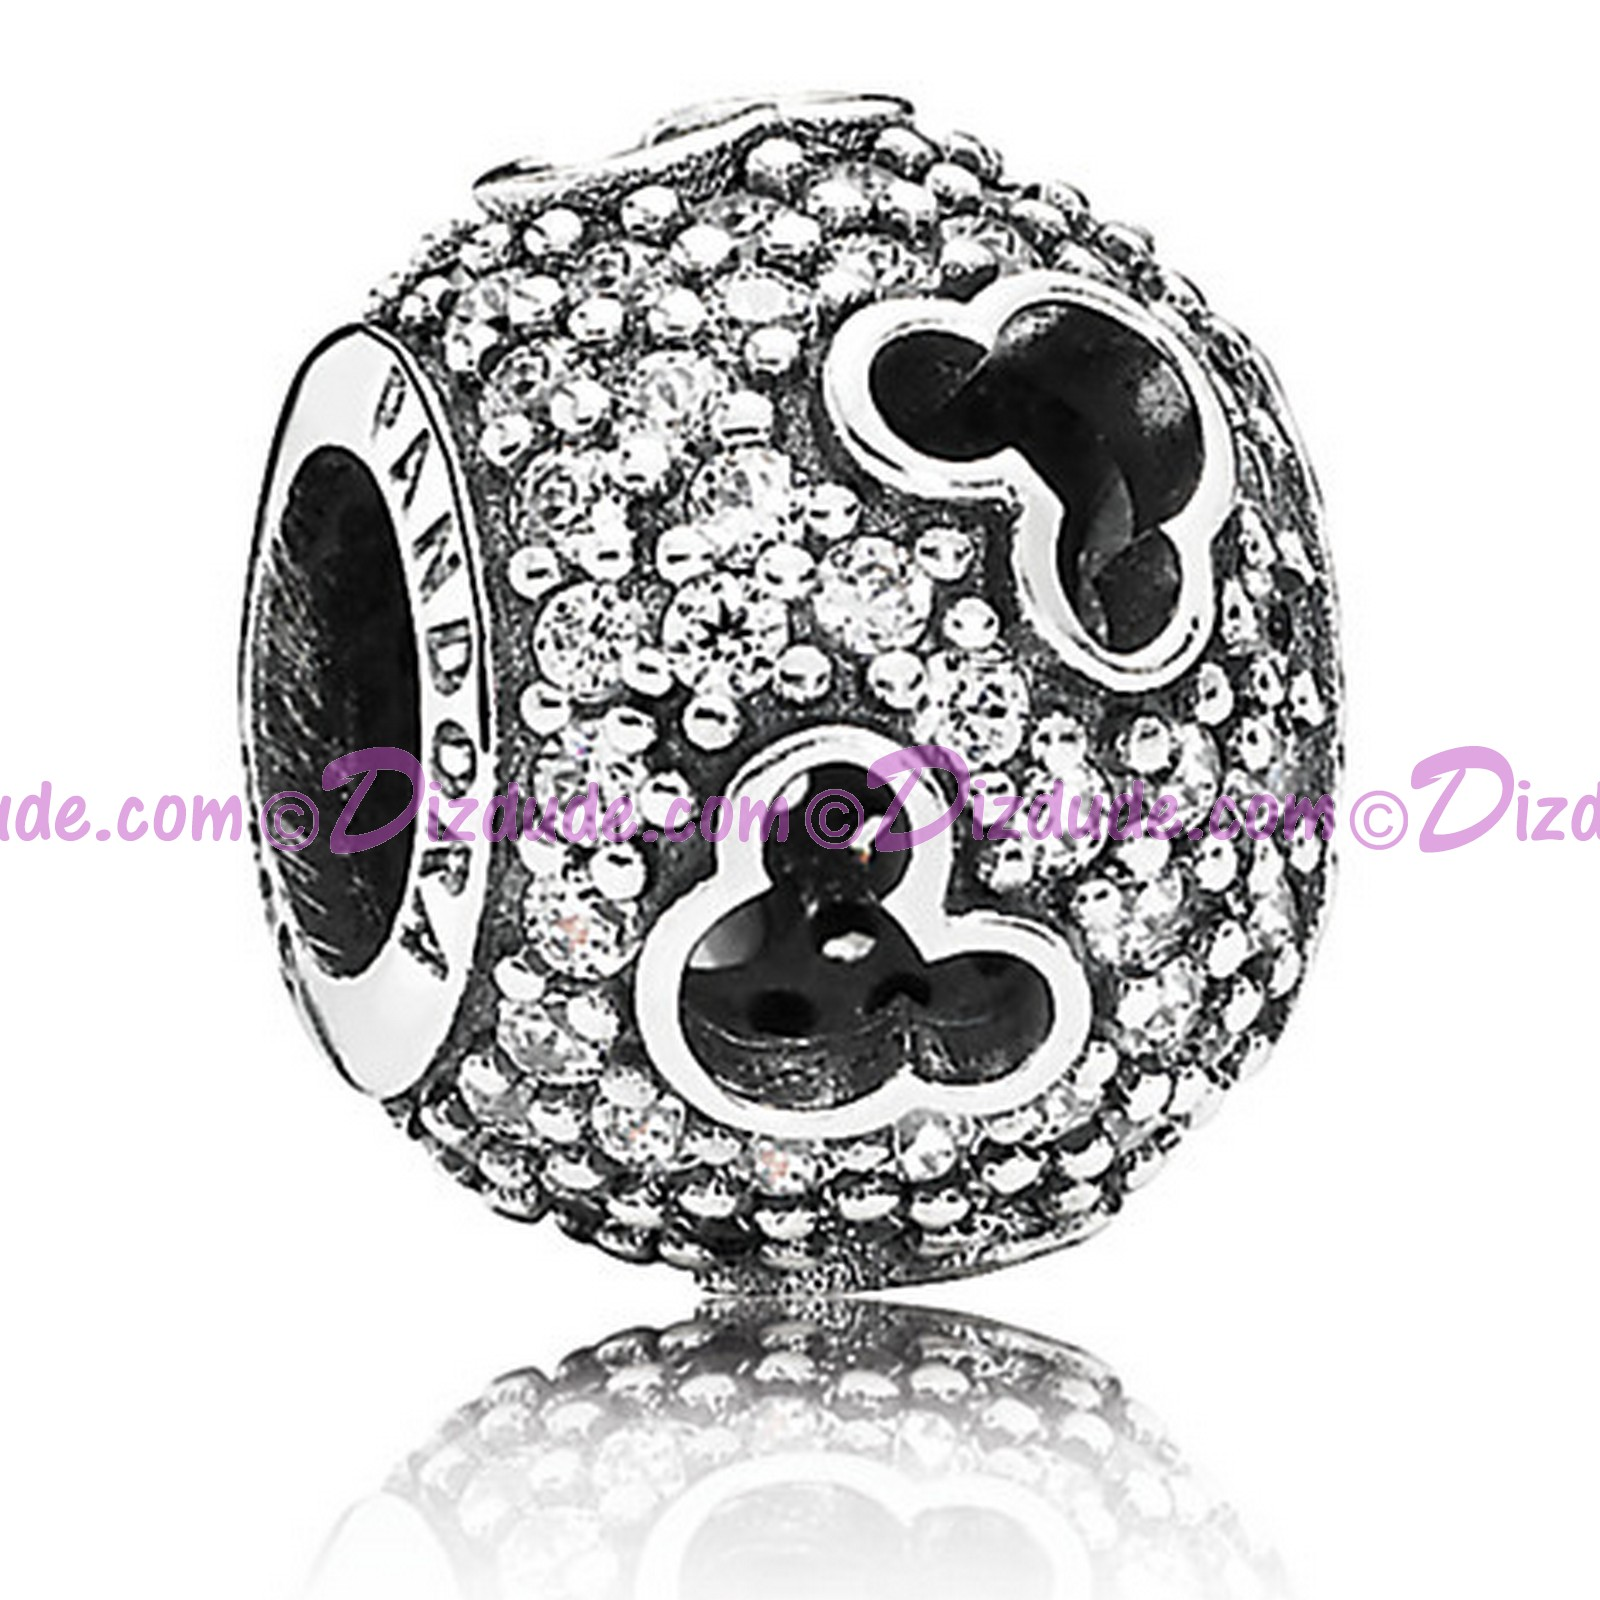 """(sold Out) Disney Pandora """"Mickey Silhouettes"""" Sterling Silver Charm with Cubic Zirconias"""